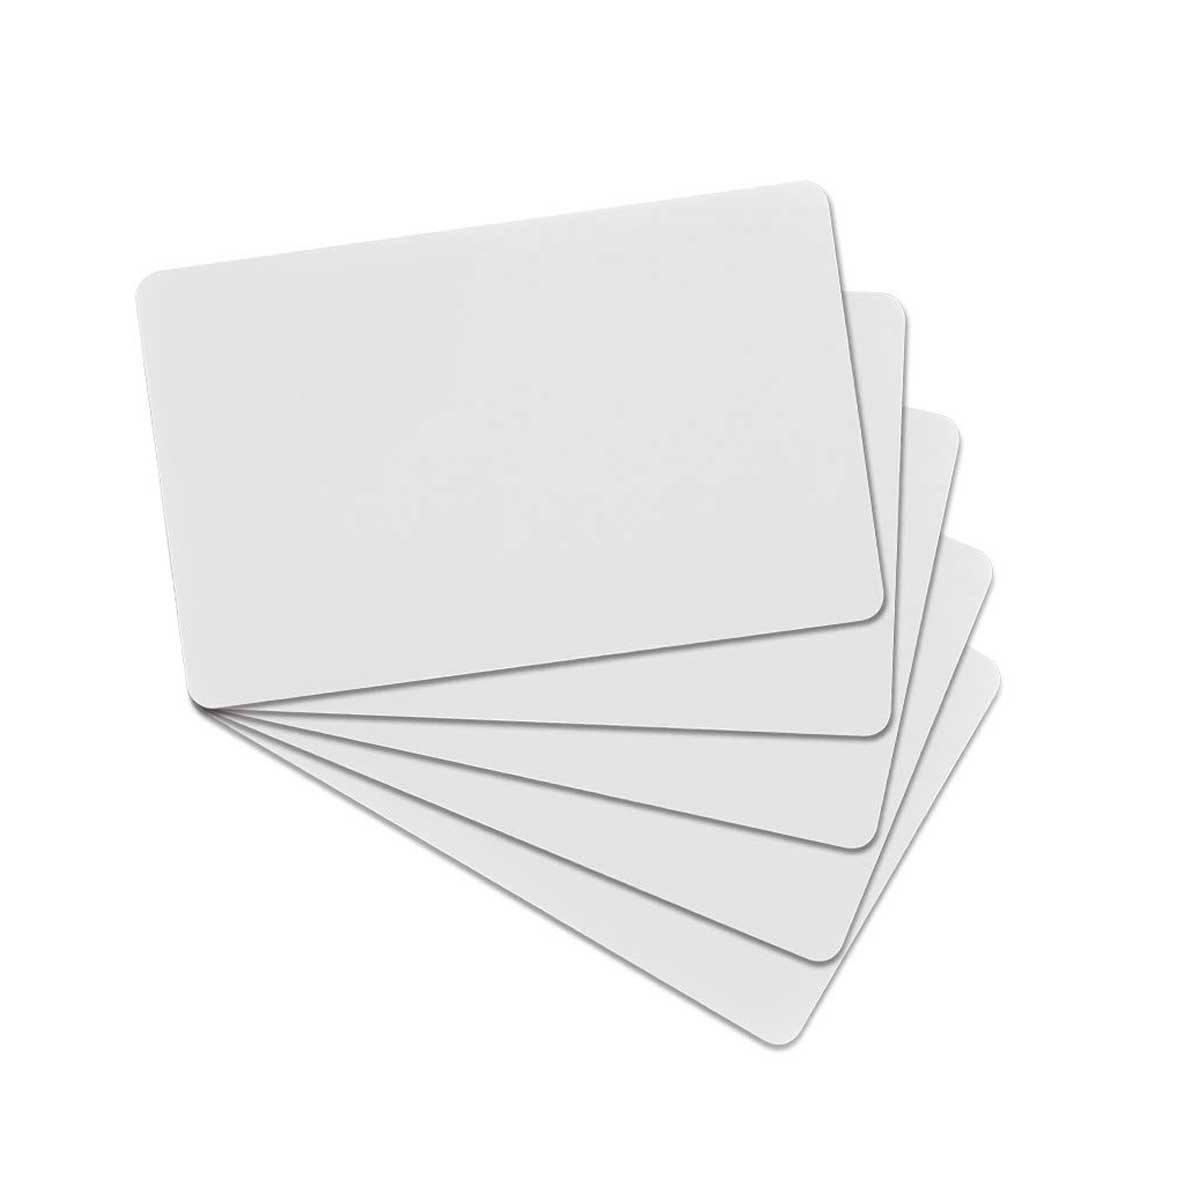 MIFARE Classic 1k Contactless Smart Card